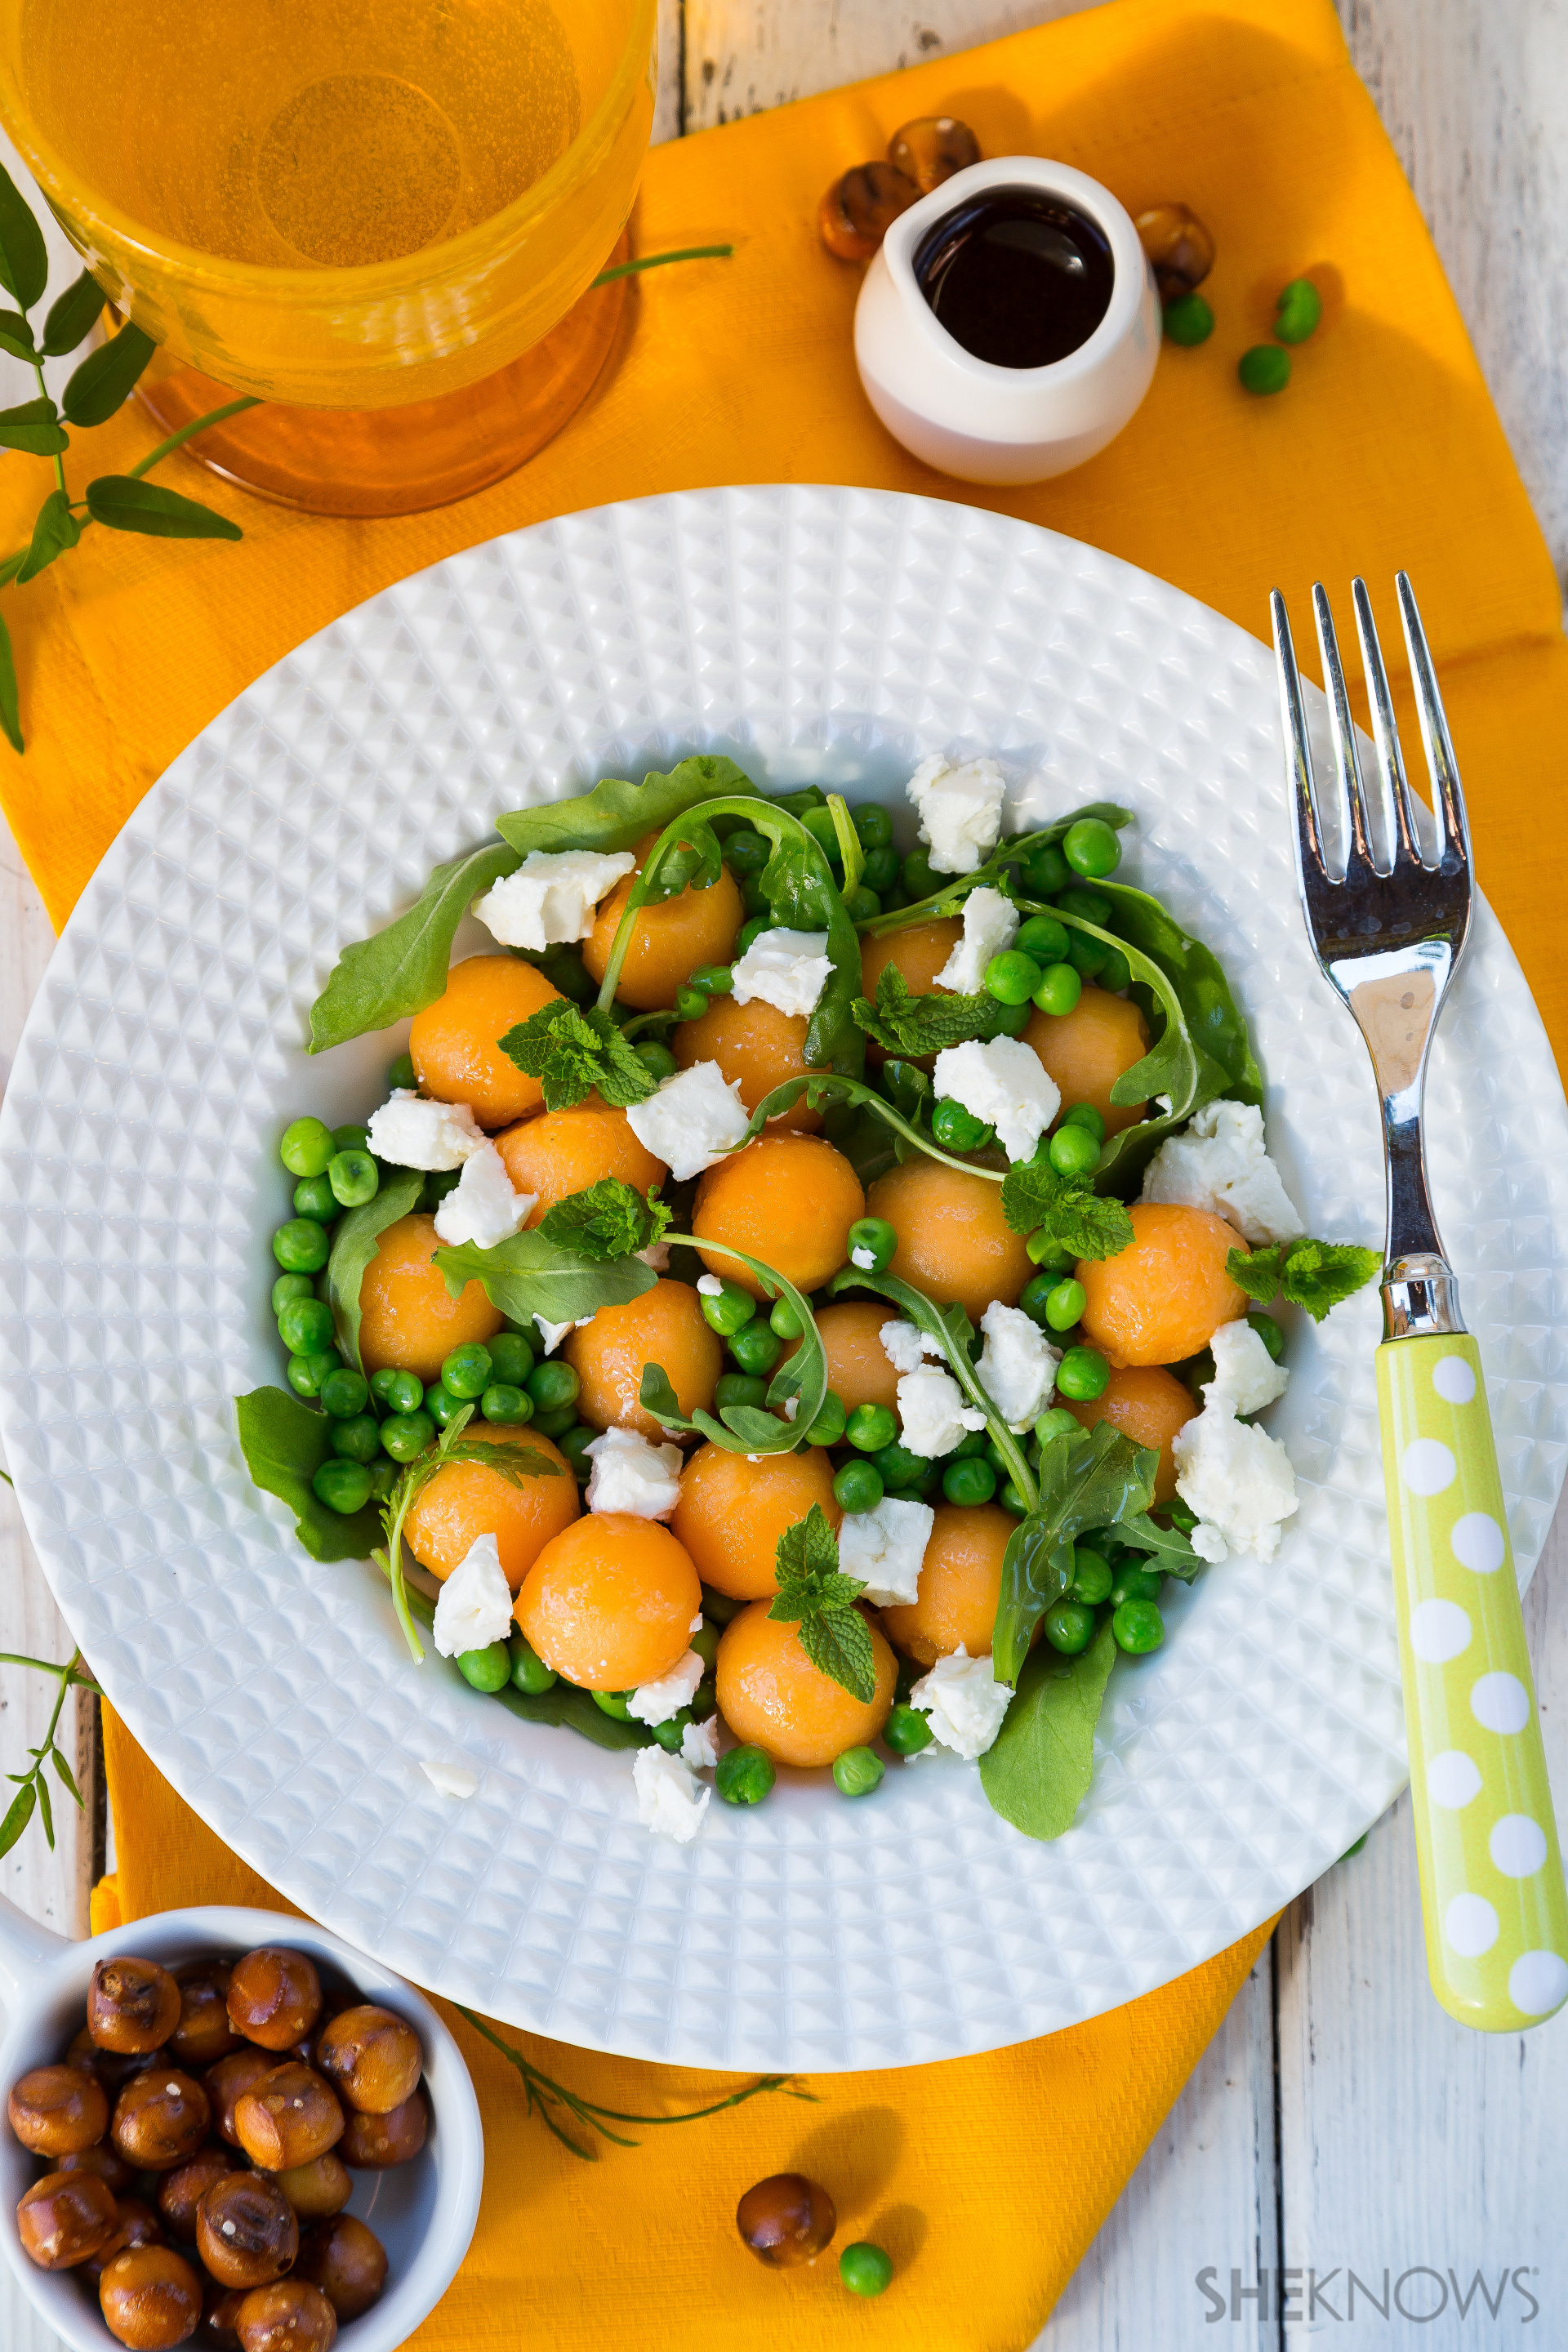 Eat light and fresh this season with sumptuous, summery salads